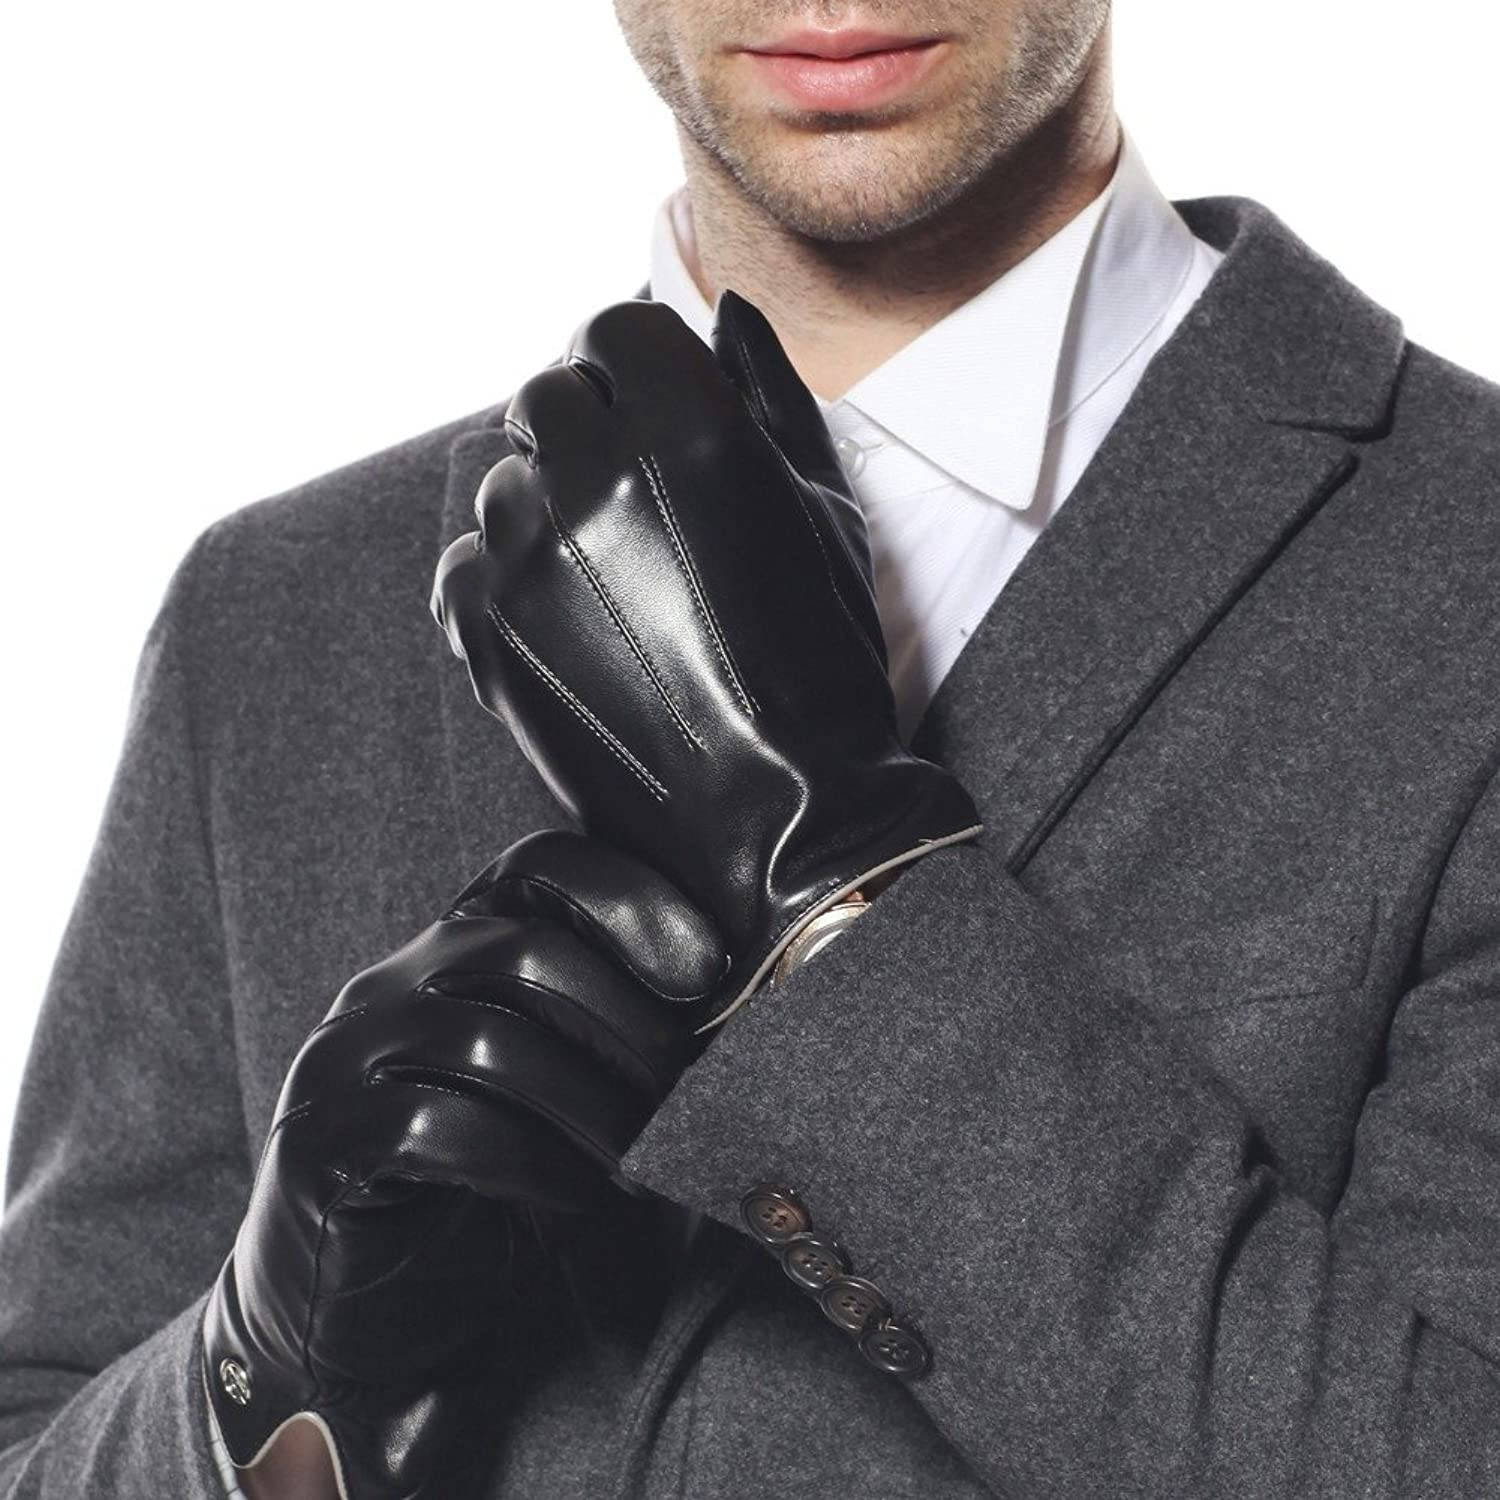 Mens black leather gloves xl - Luxury Men S Touchscreen Texting Winter Italian Nappa Leather Dress Driving Gloves Cashmere Wool Fleece Lining 8 Us Standard Size Black Fleece